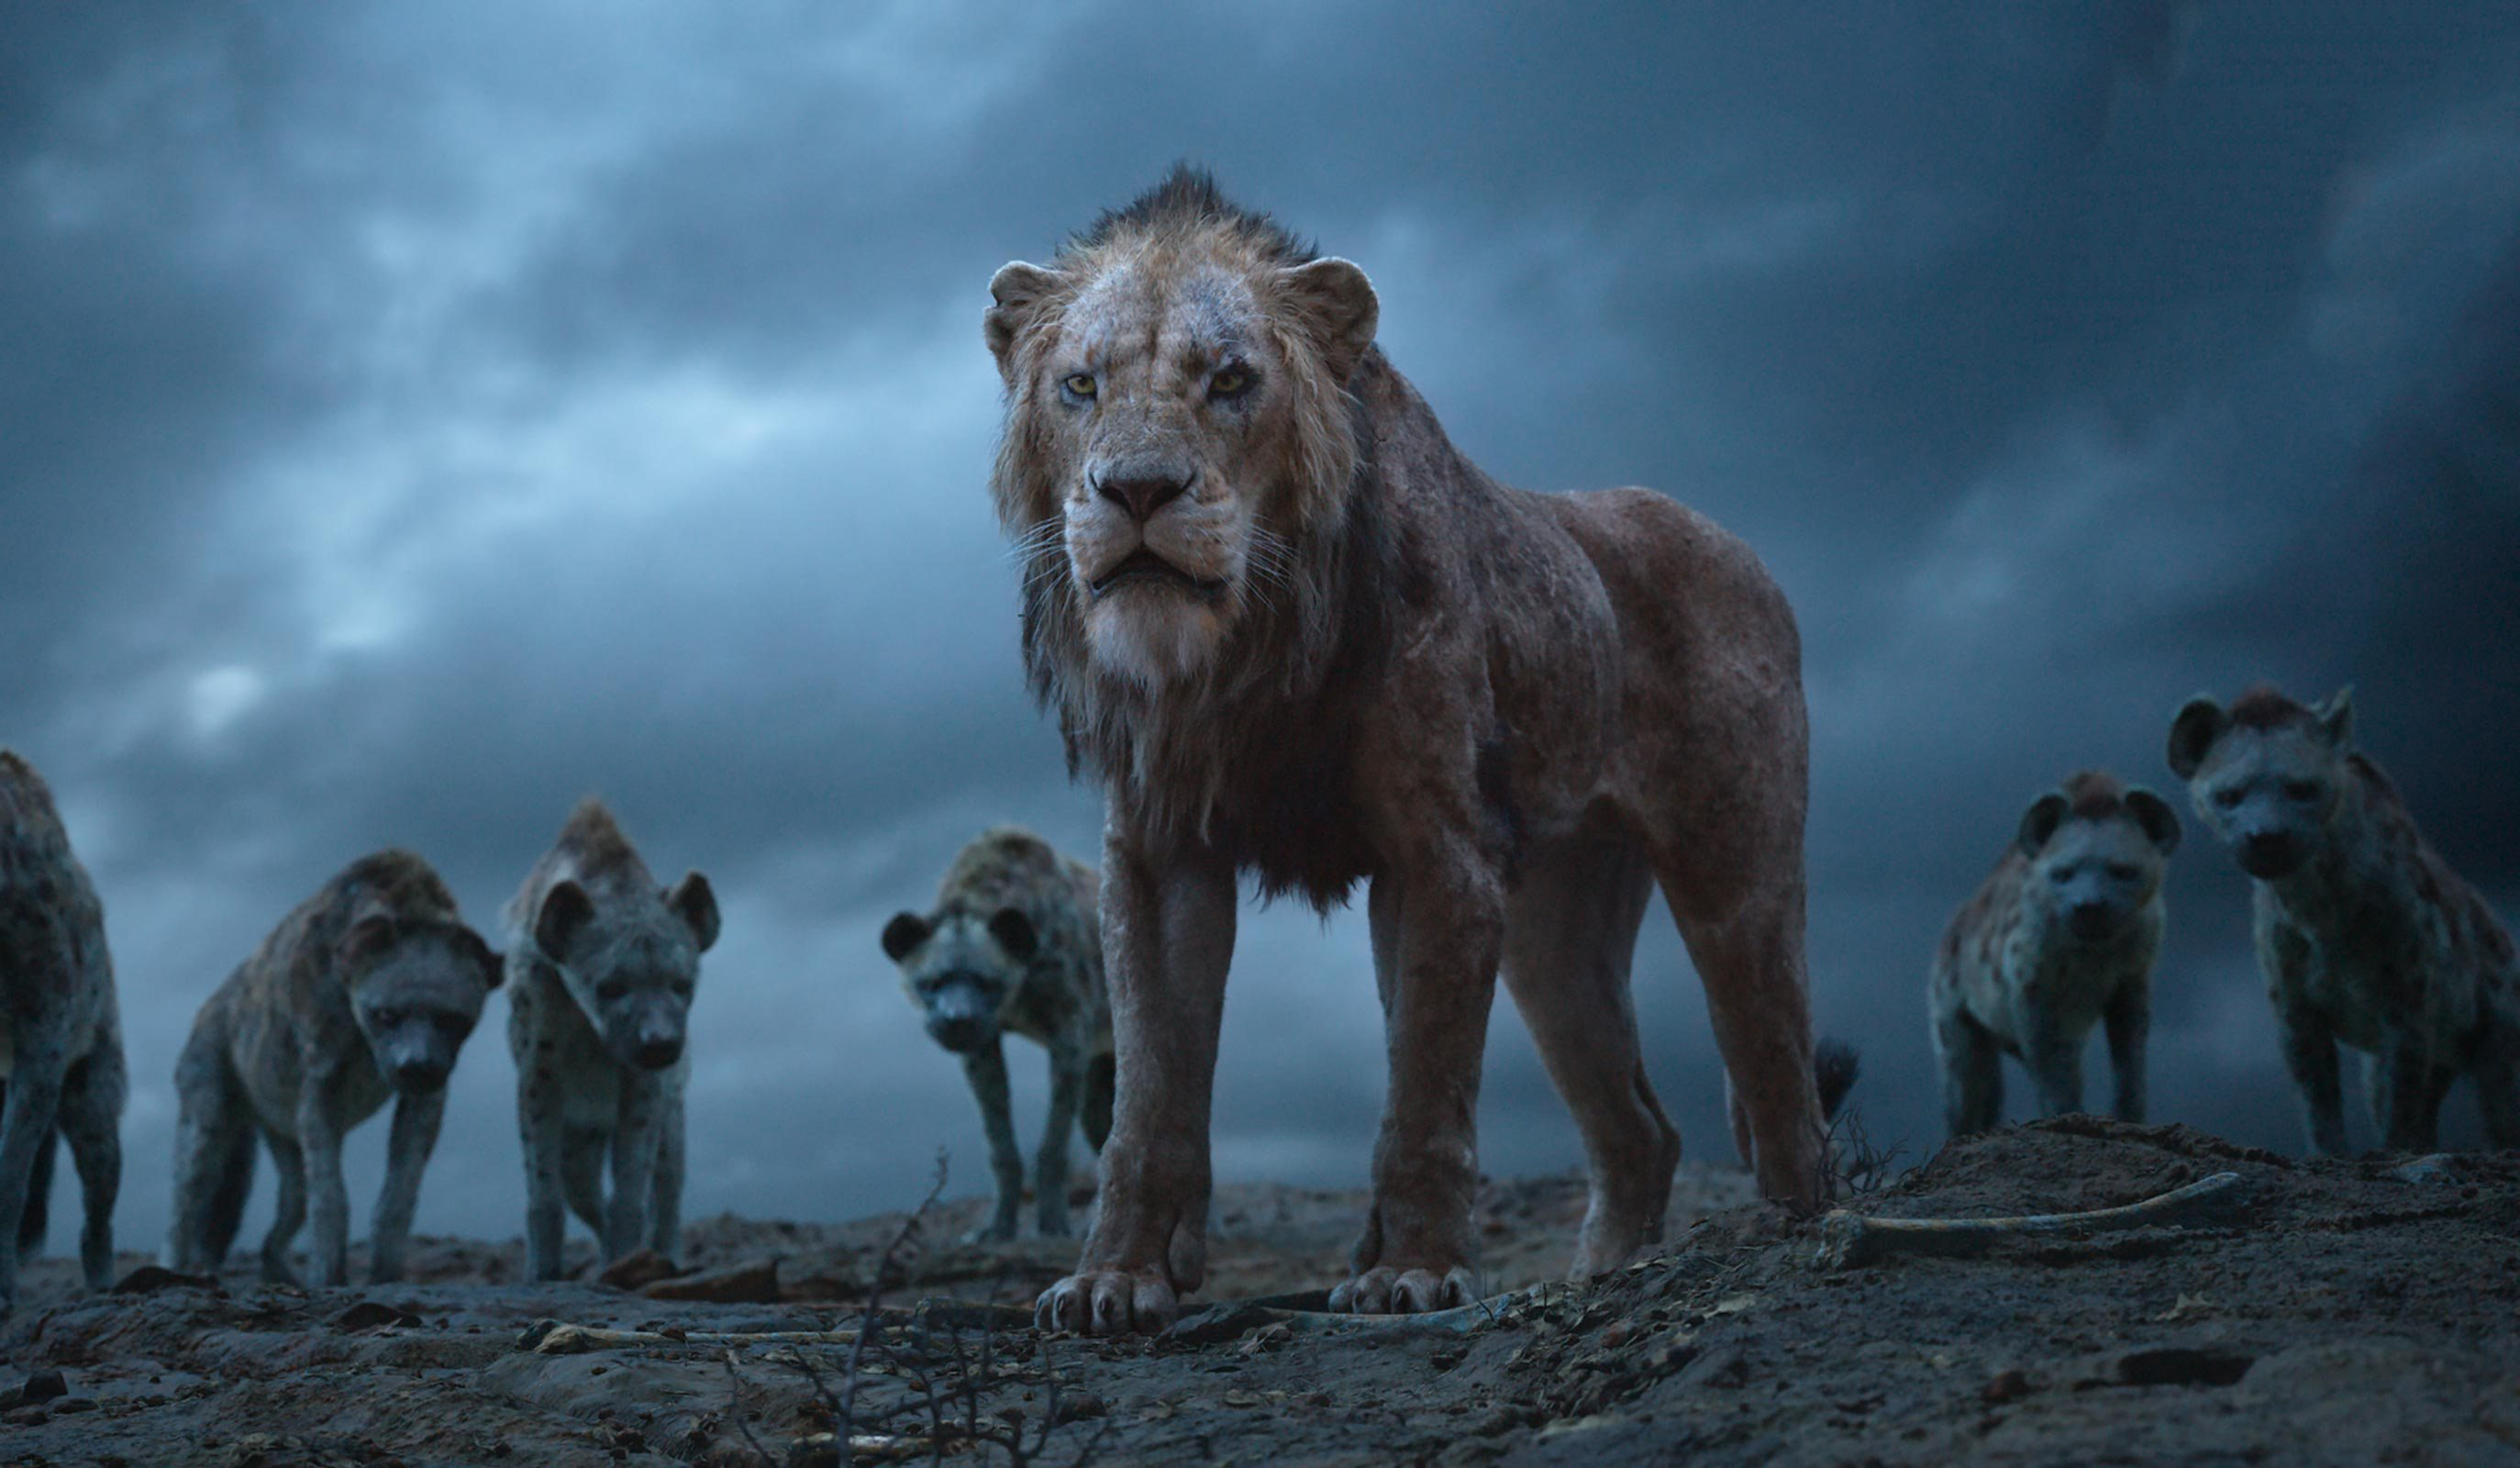 Scar The Lion King - Lion King 2019 Hyenas , HD Wallpaper & Backgrounds